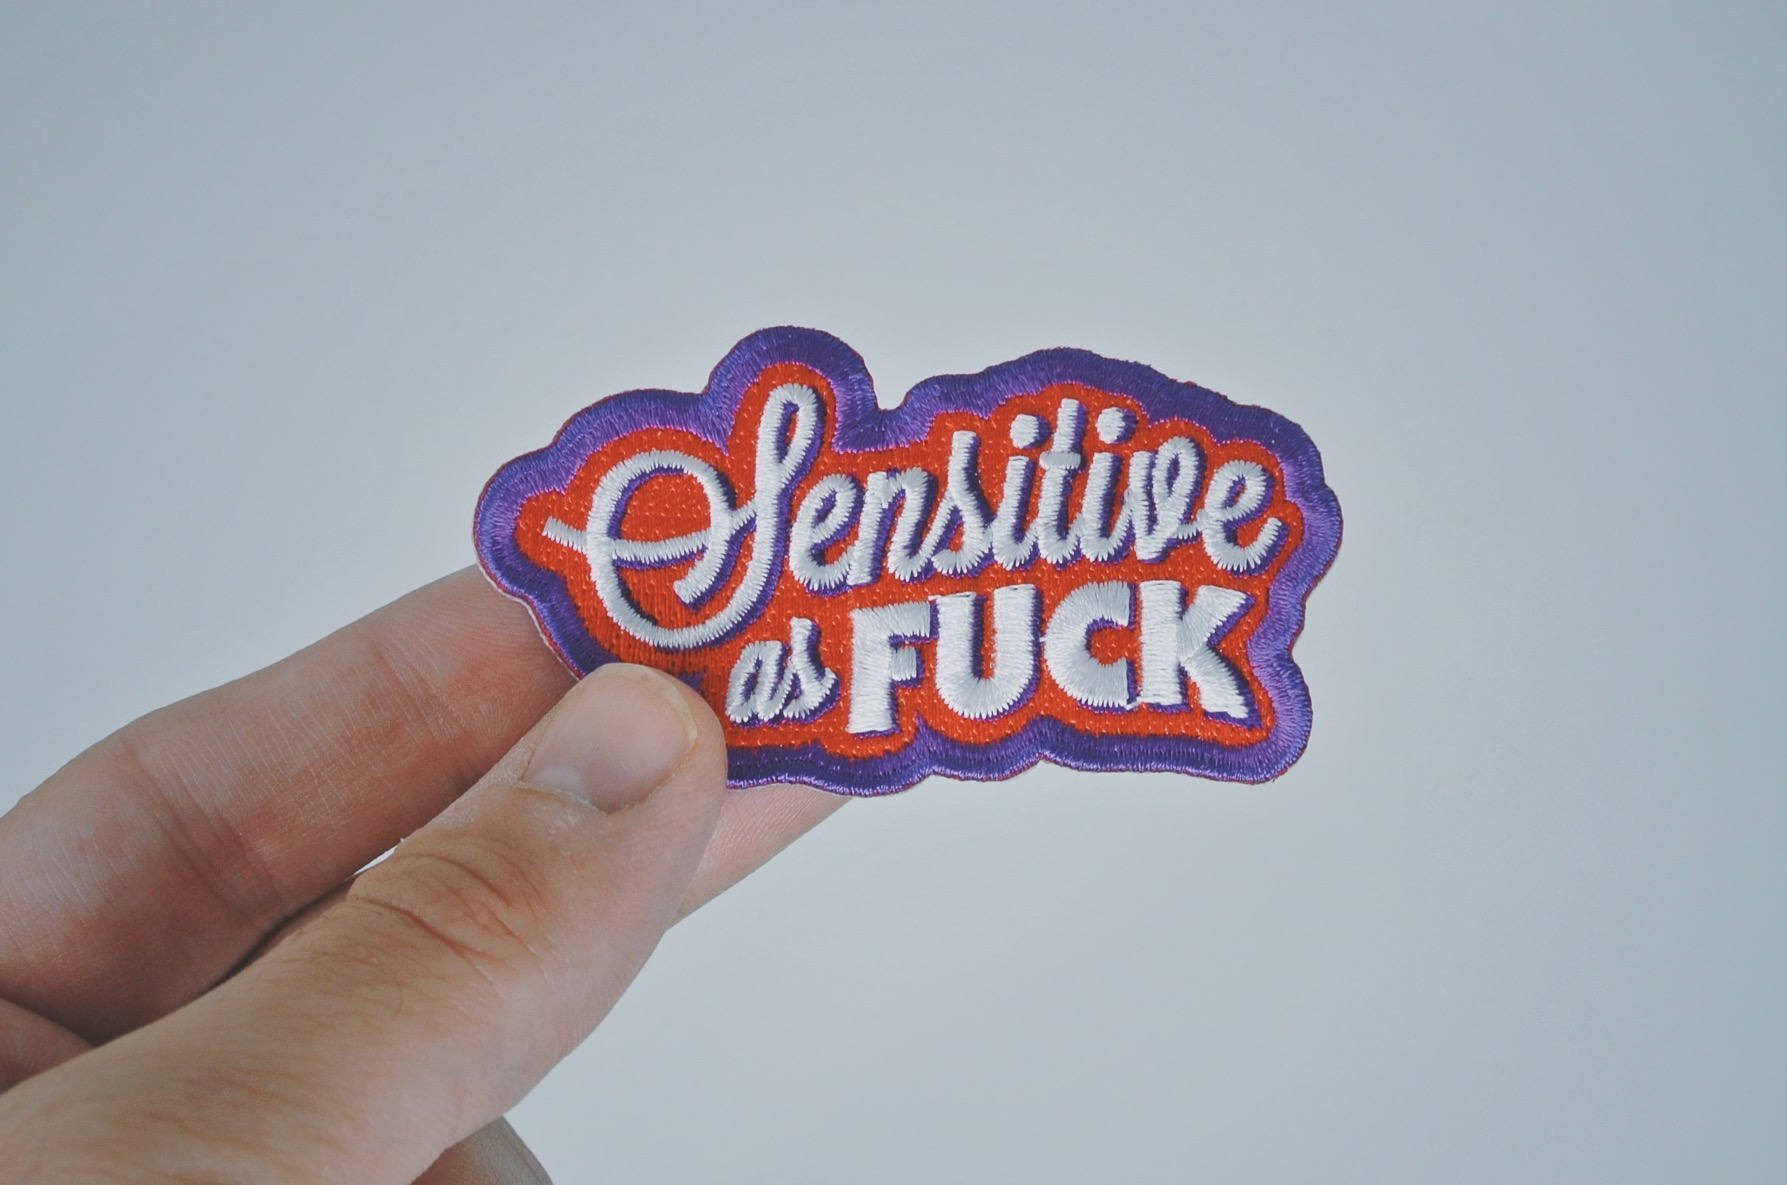 Sensitive as Fuck Patch - Punk/Emo Fashion Accessory